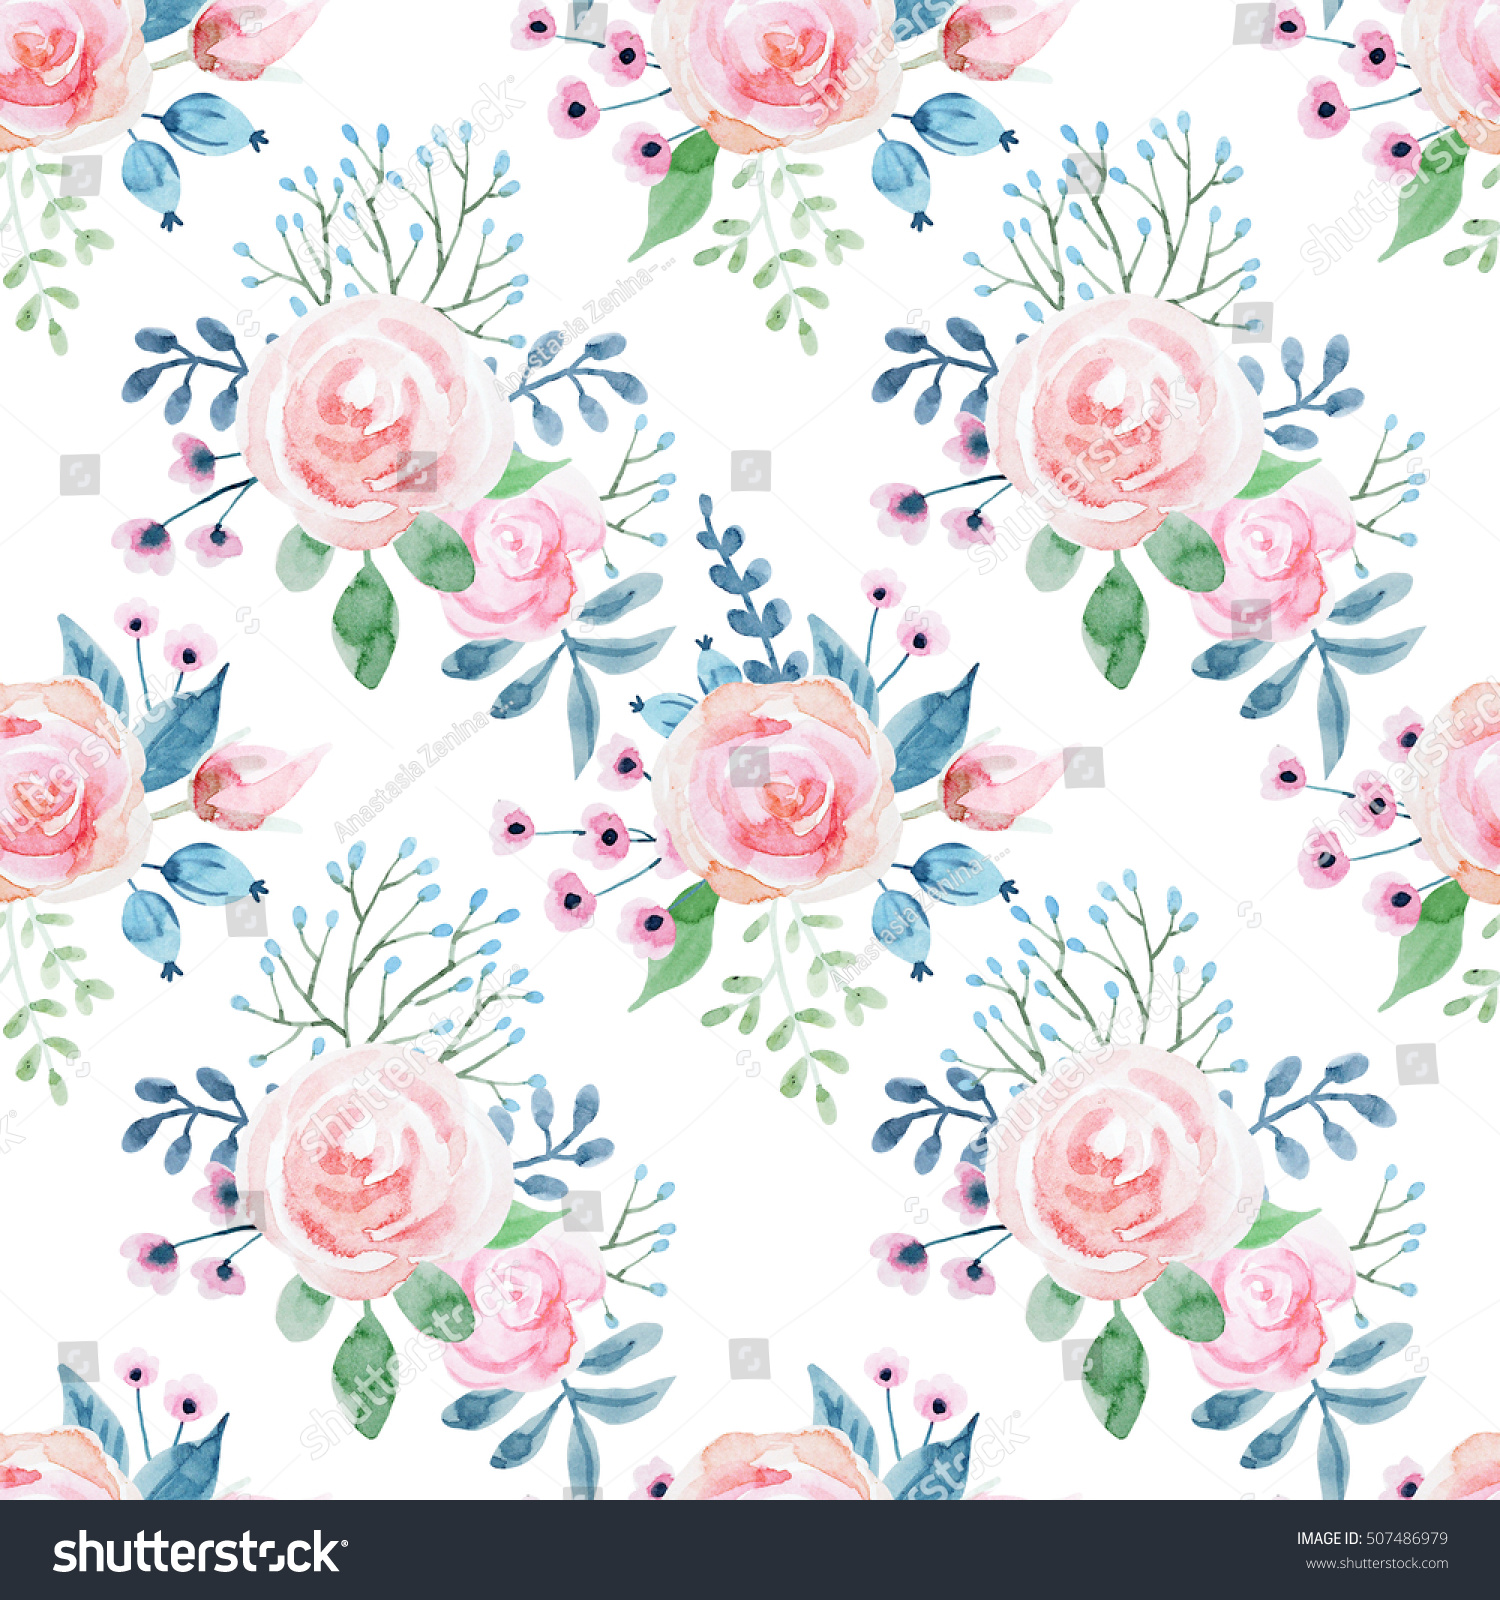 Watercolor Floral Pattern Roses Cute Floral Stock Illustration